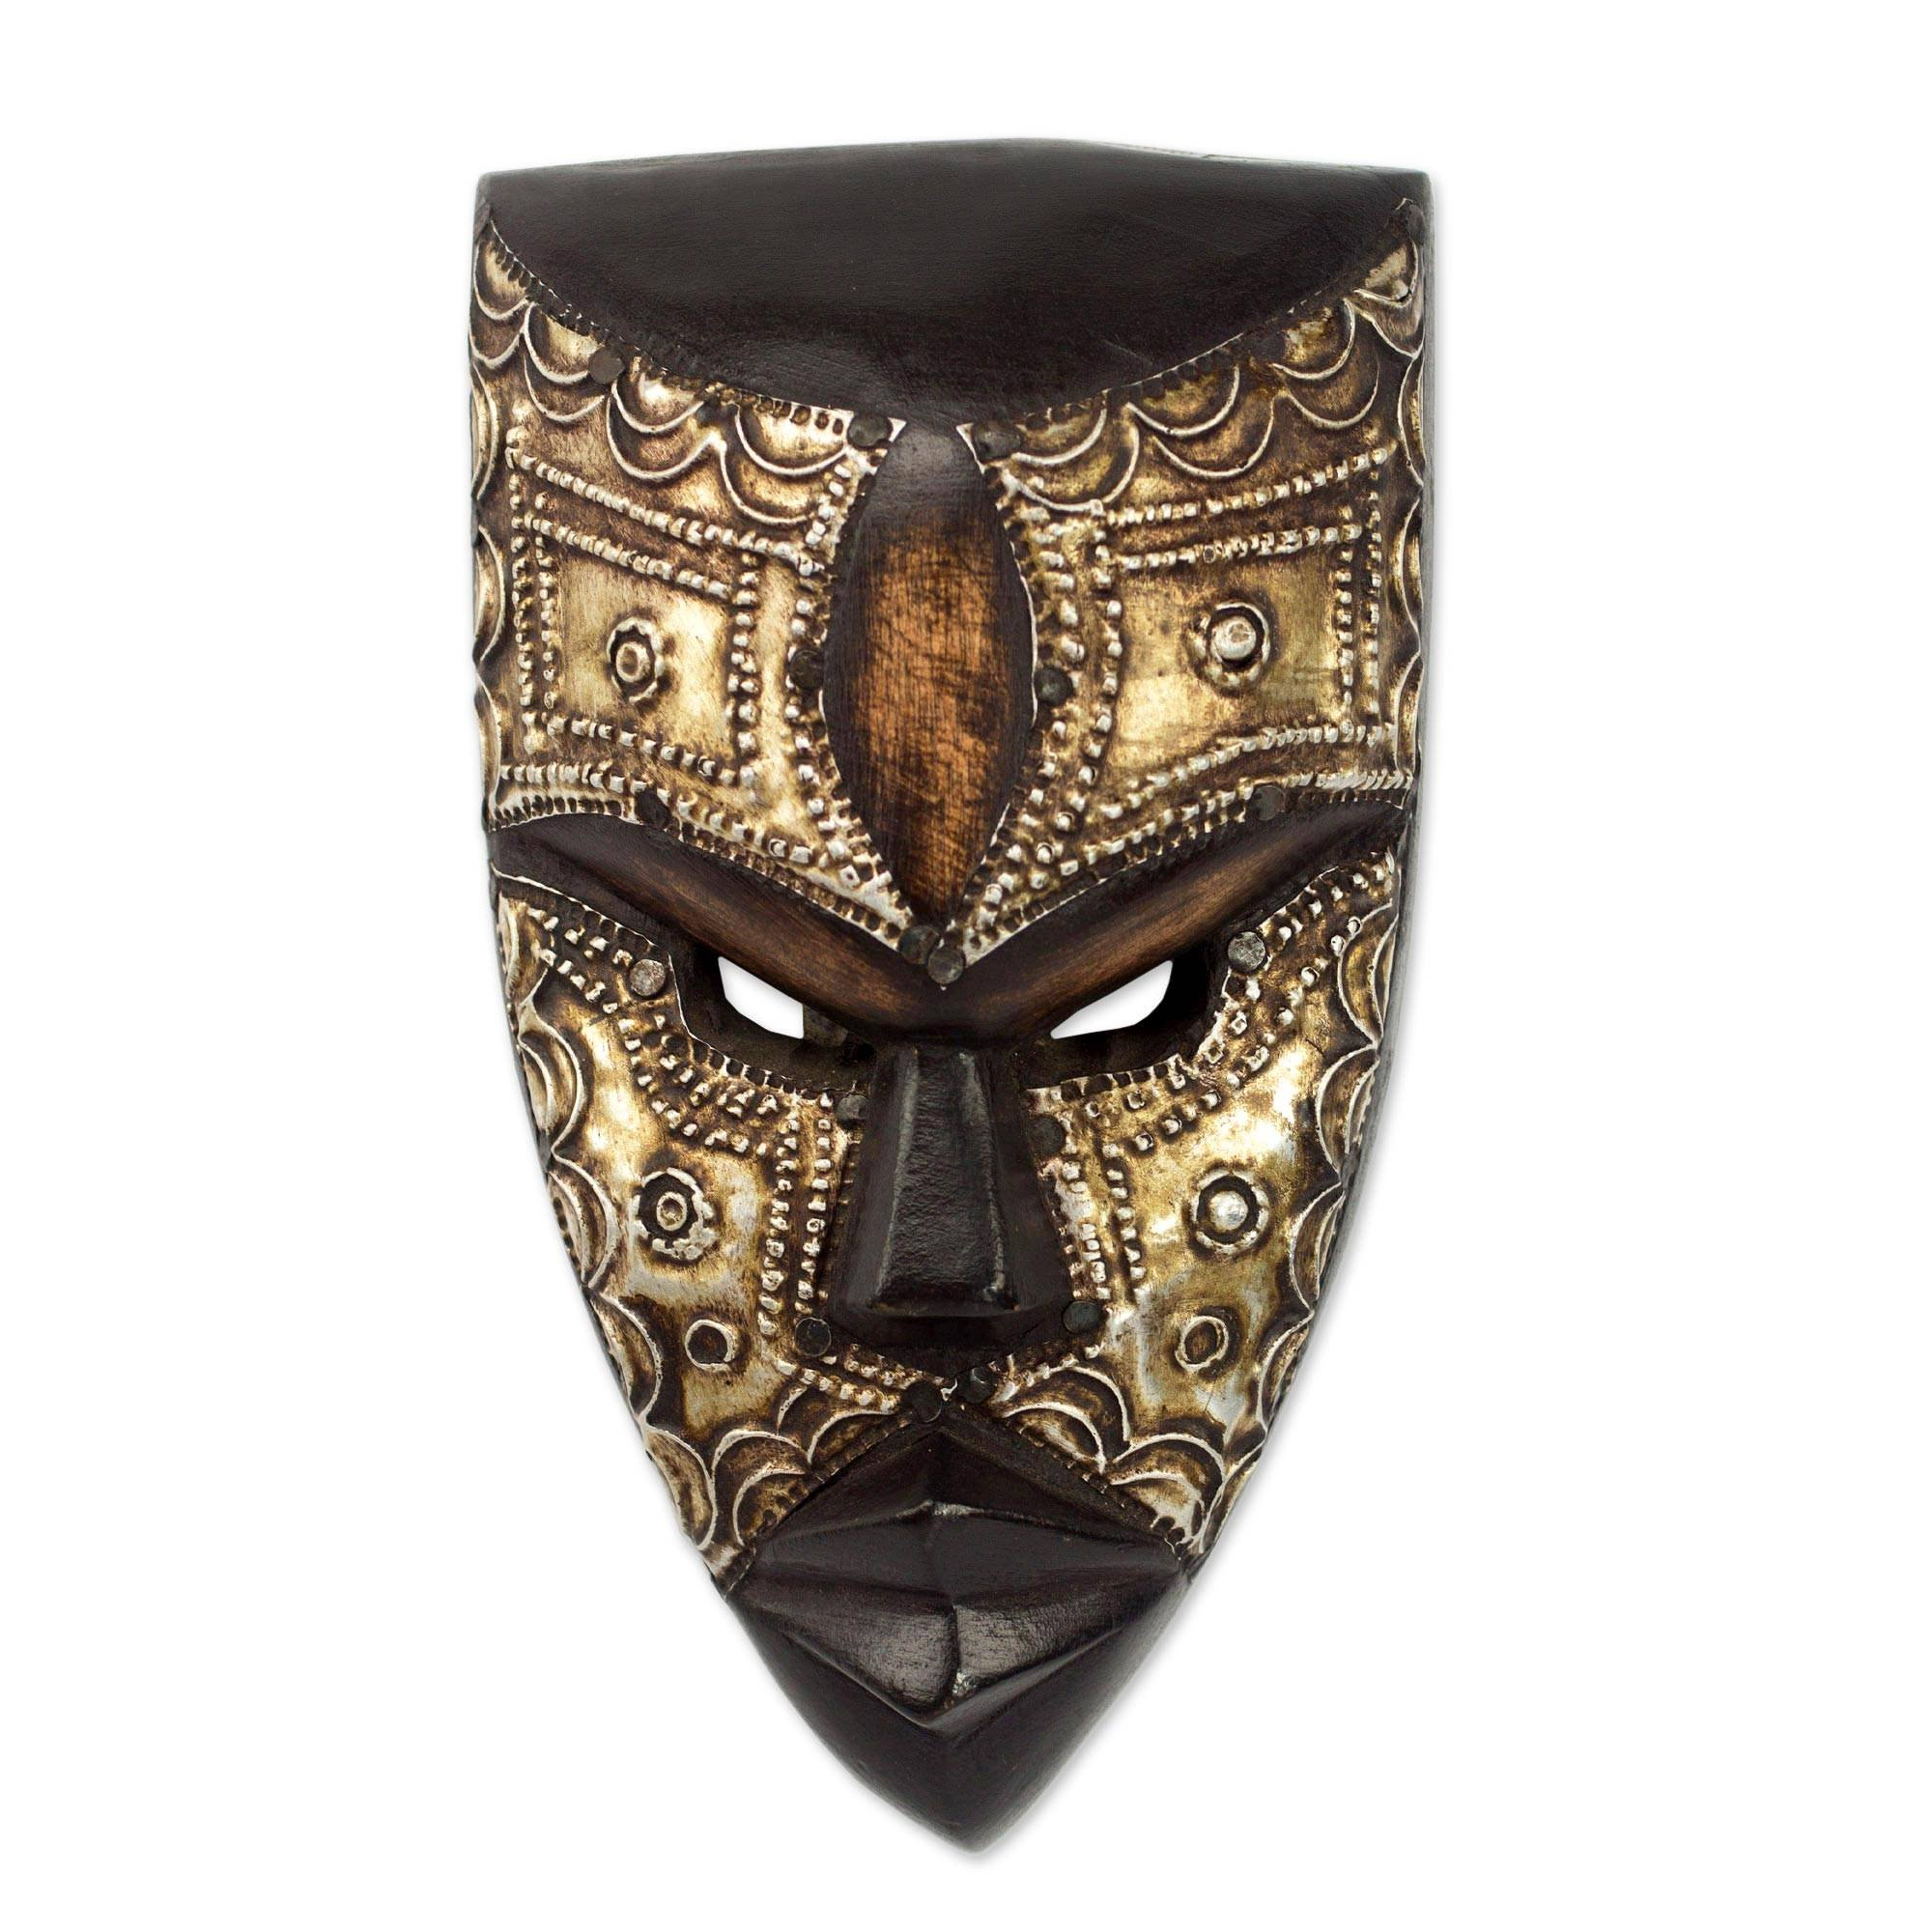 NOVICA Hand Carved Brown Wood Ghanaian Wall Mask with Aluminum Accents, Mbara Hunter' by NOVICA